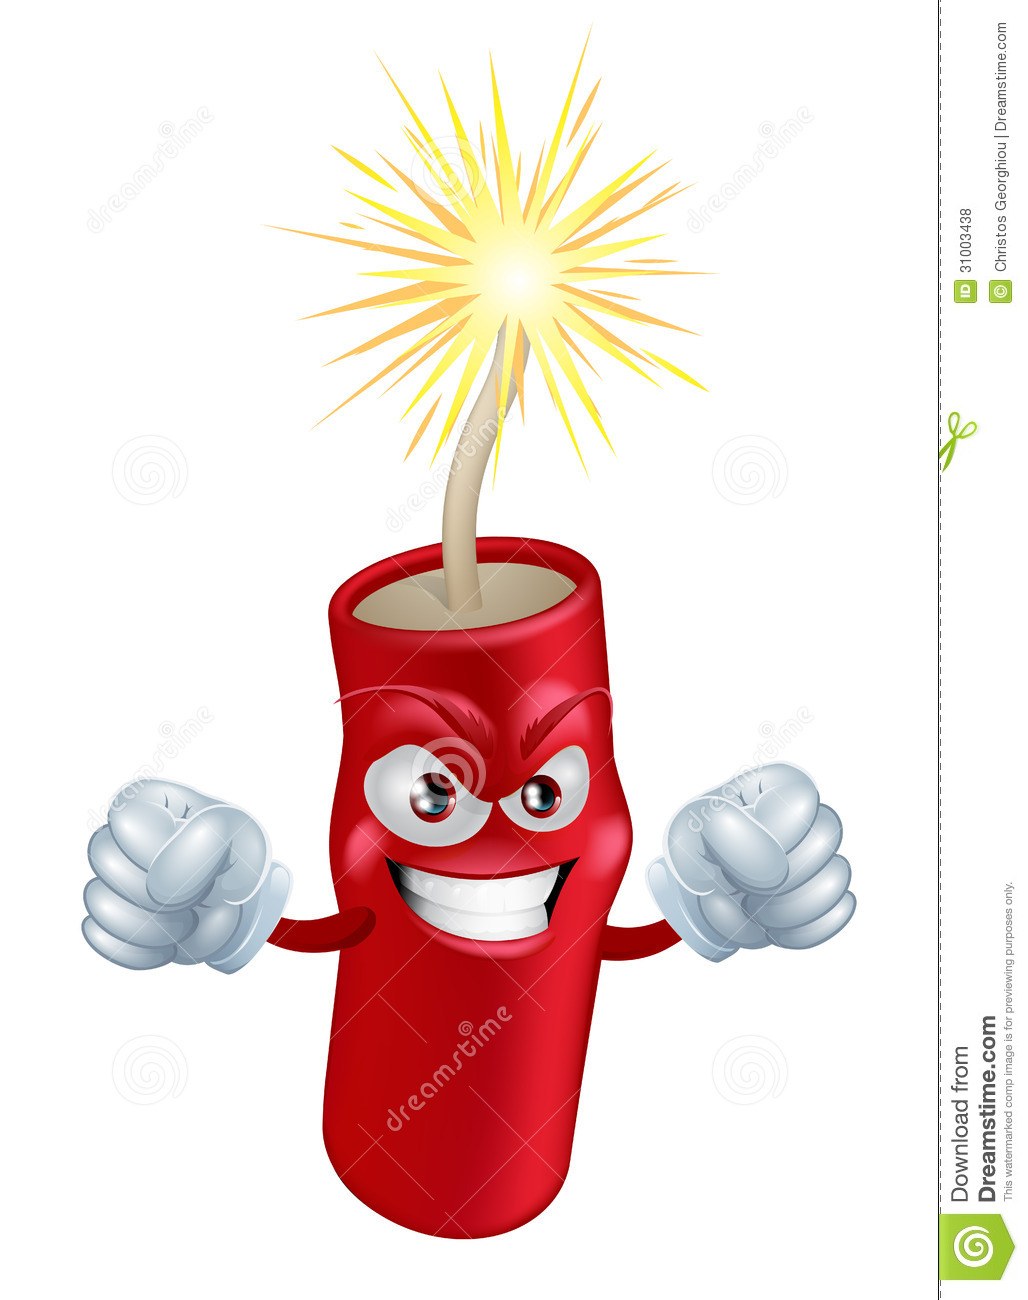 Angry Cartoon Firecracker Royalty Free Stock Photos - Image: 31003438